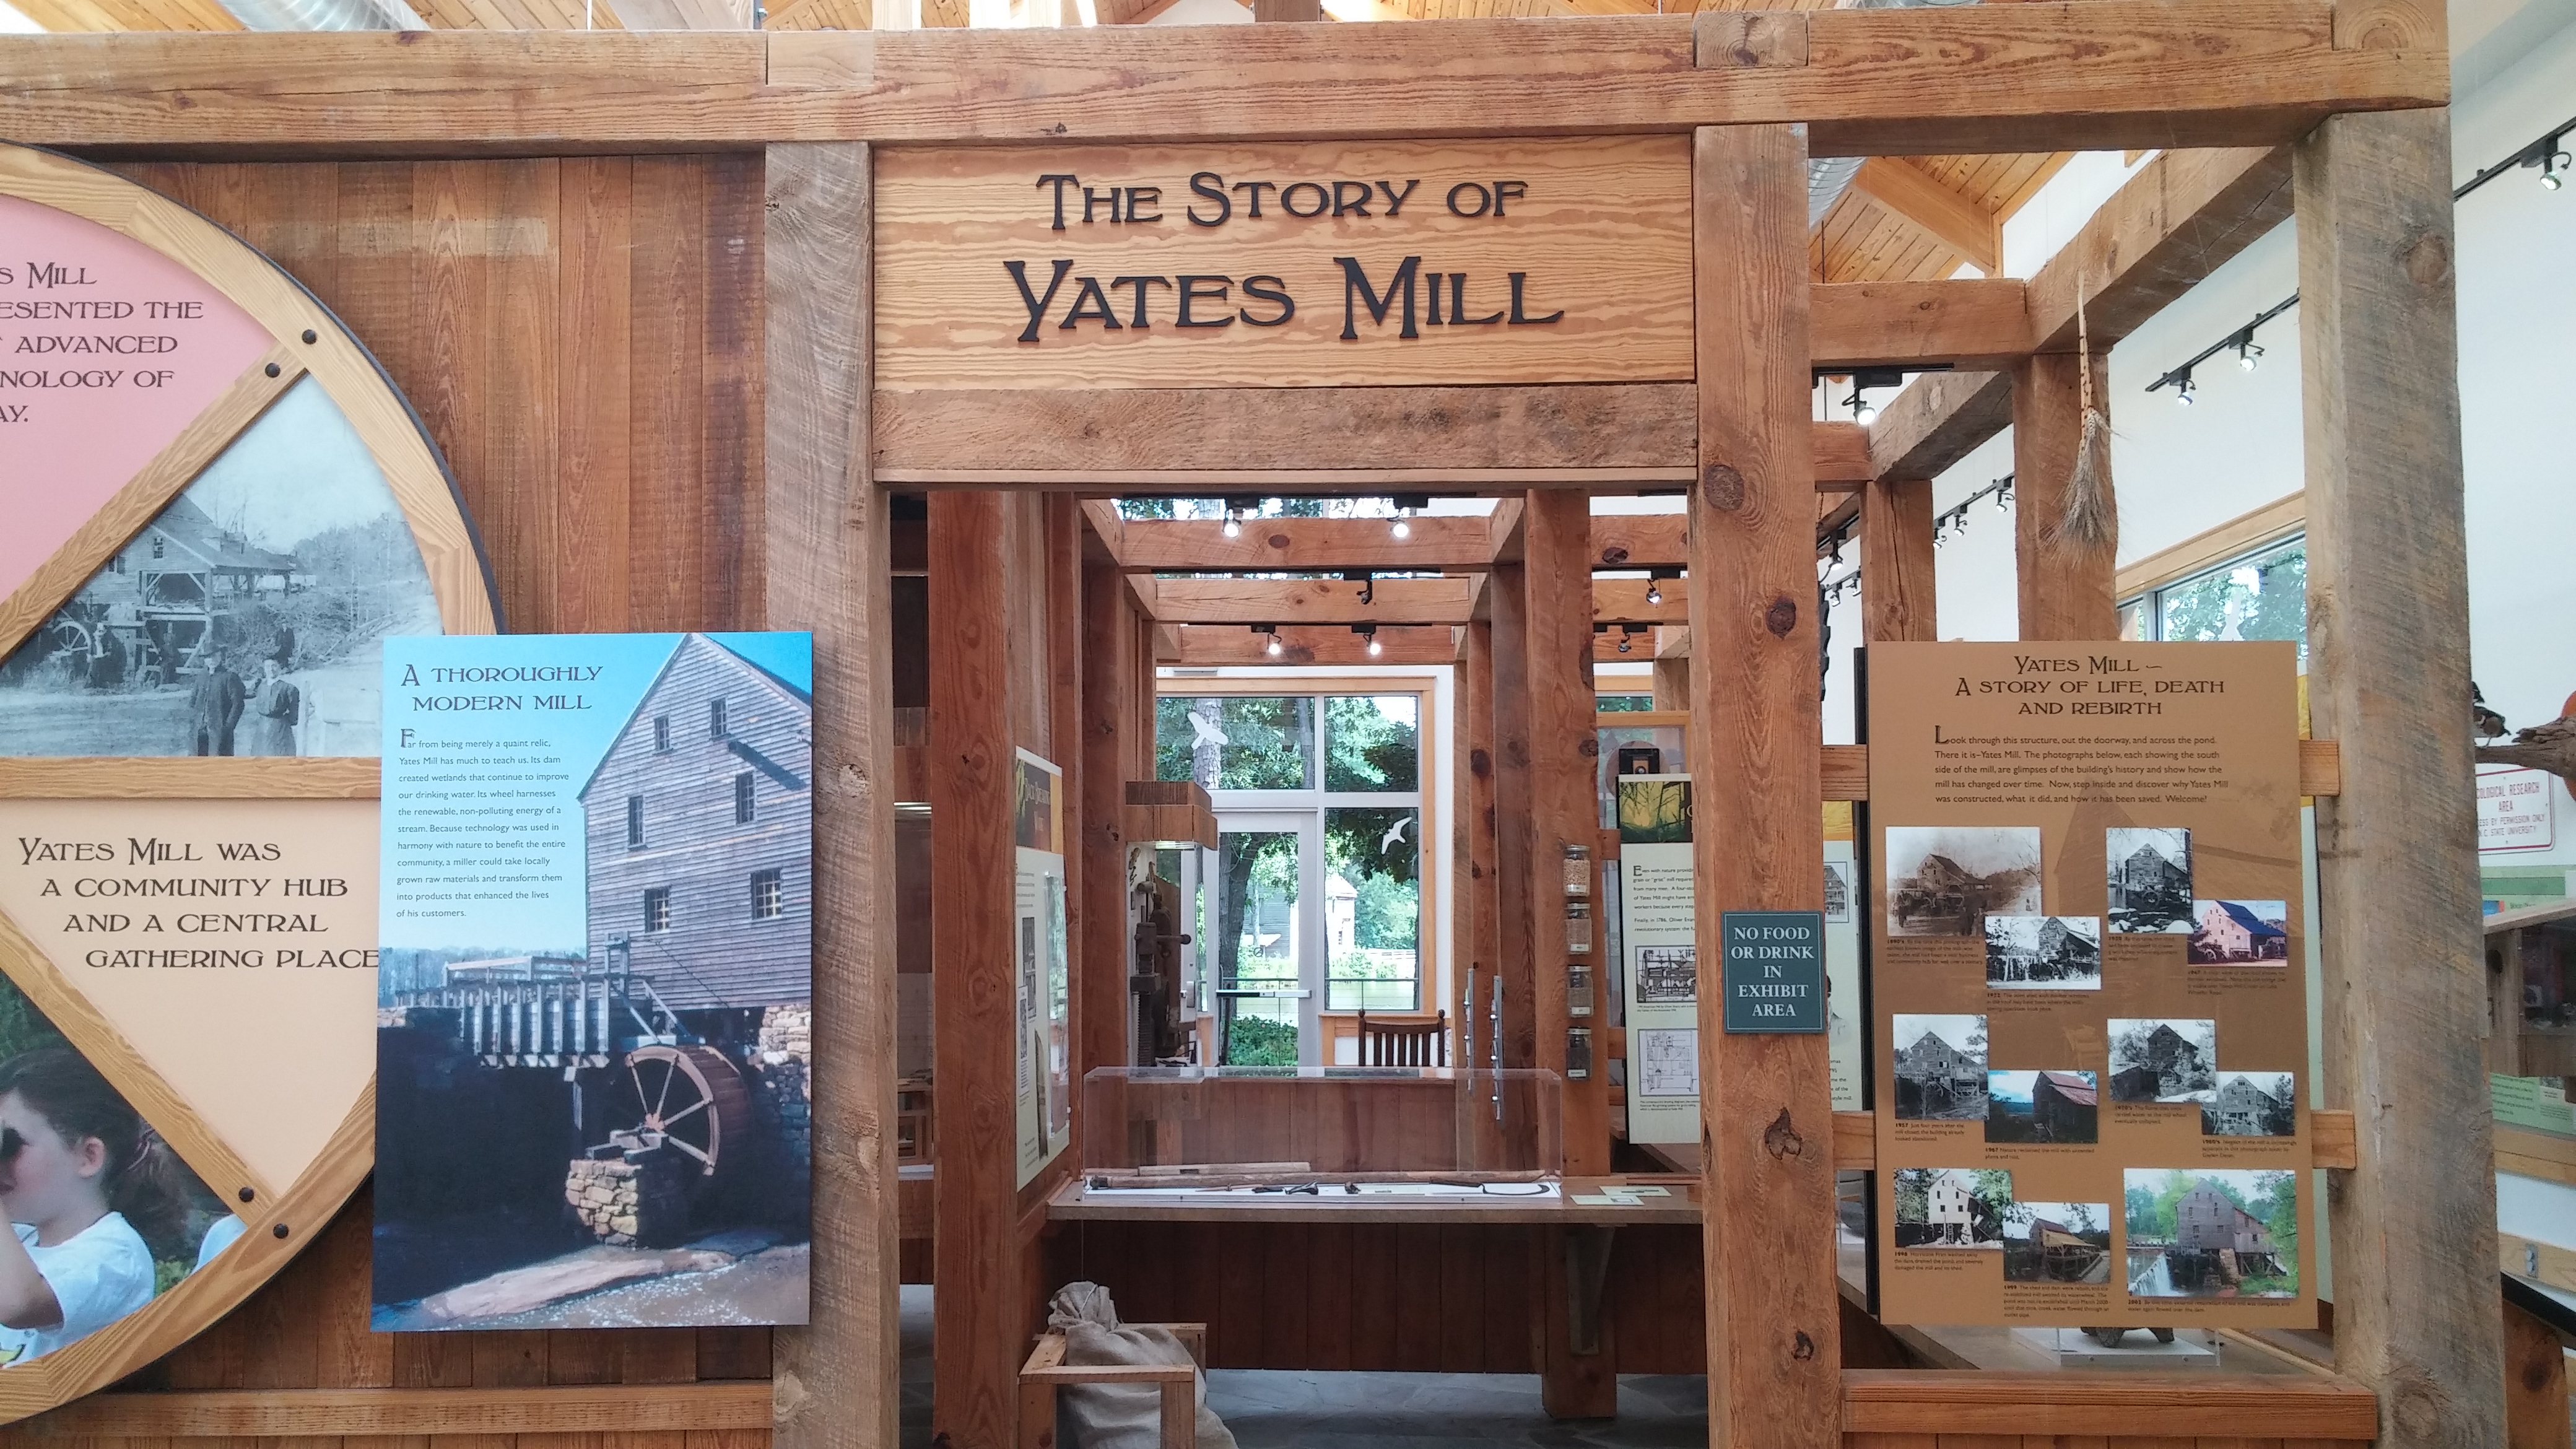 The entrance to the mill's museum, with the mill visible in the background.